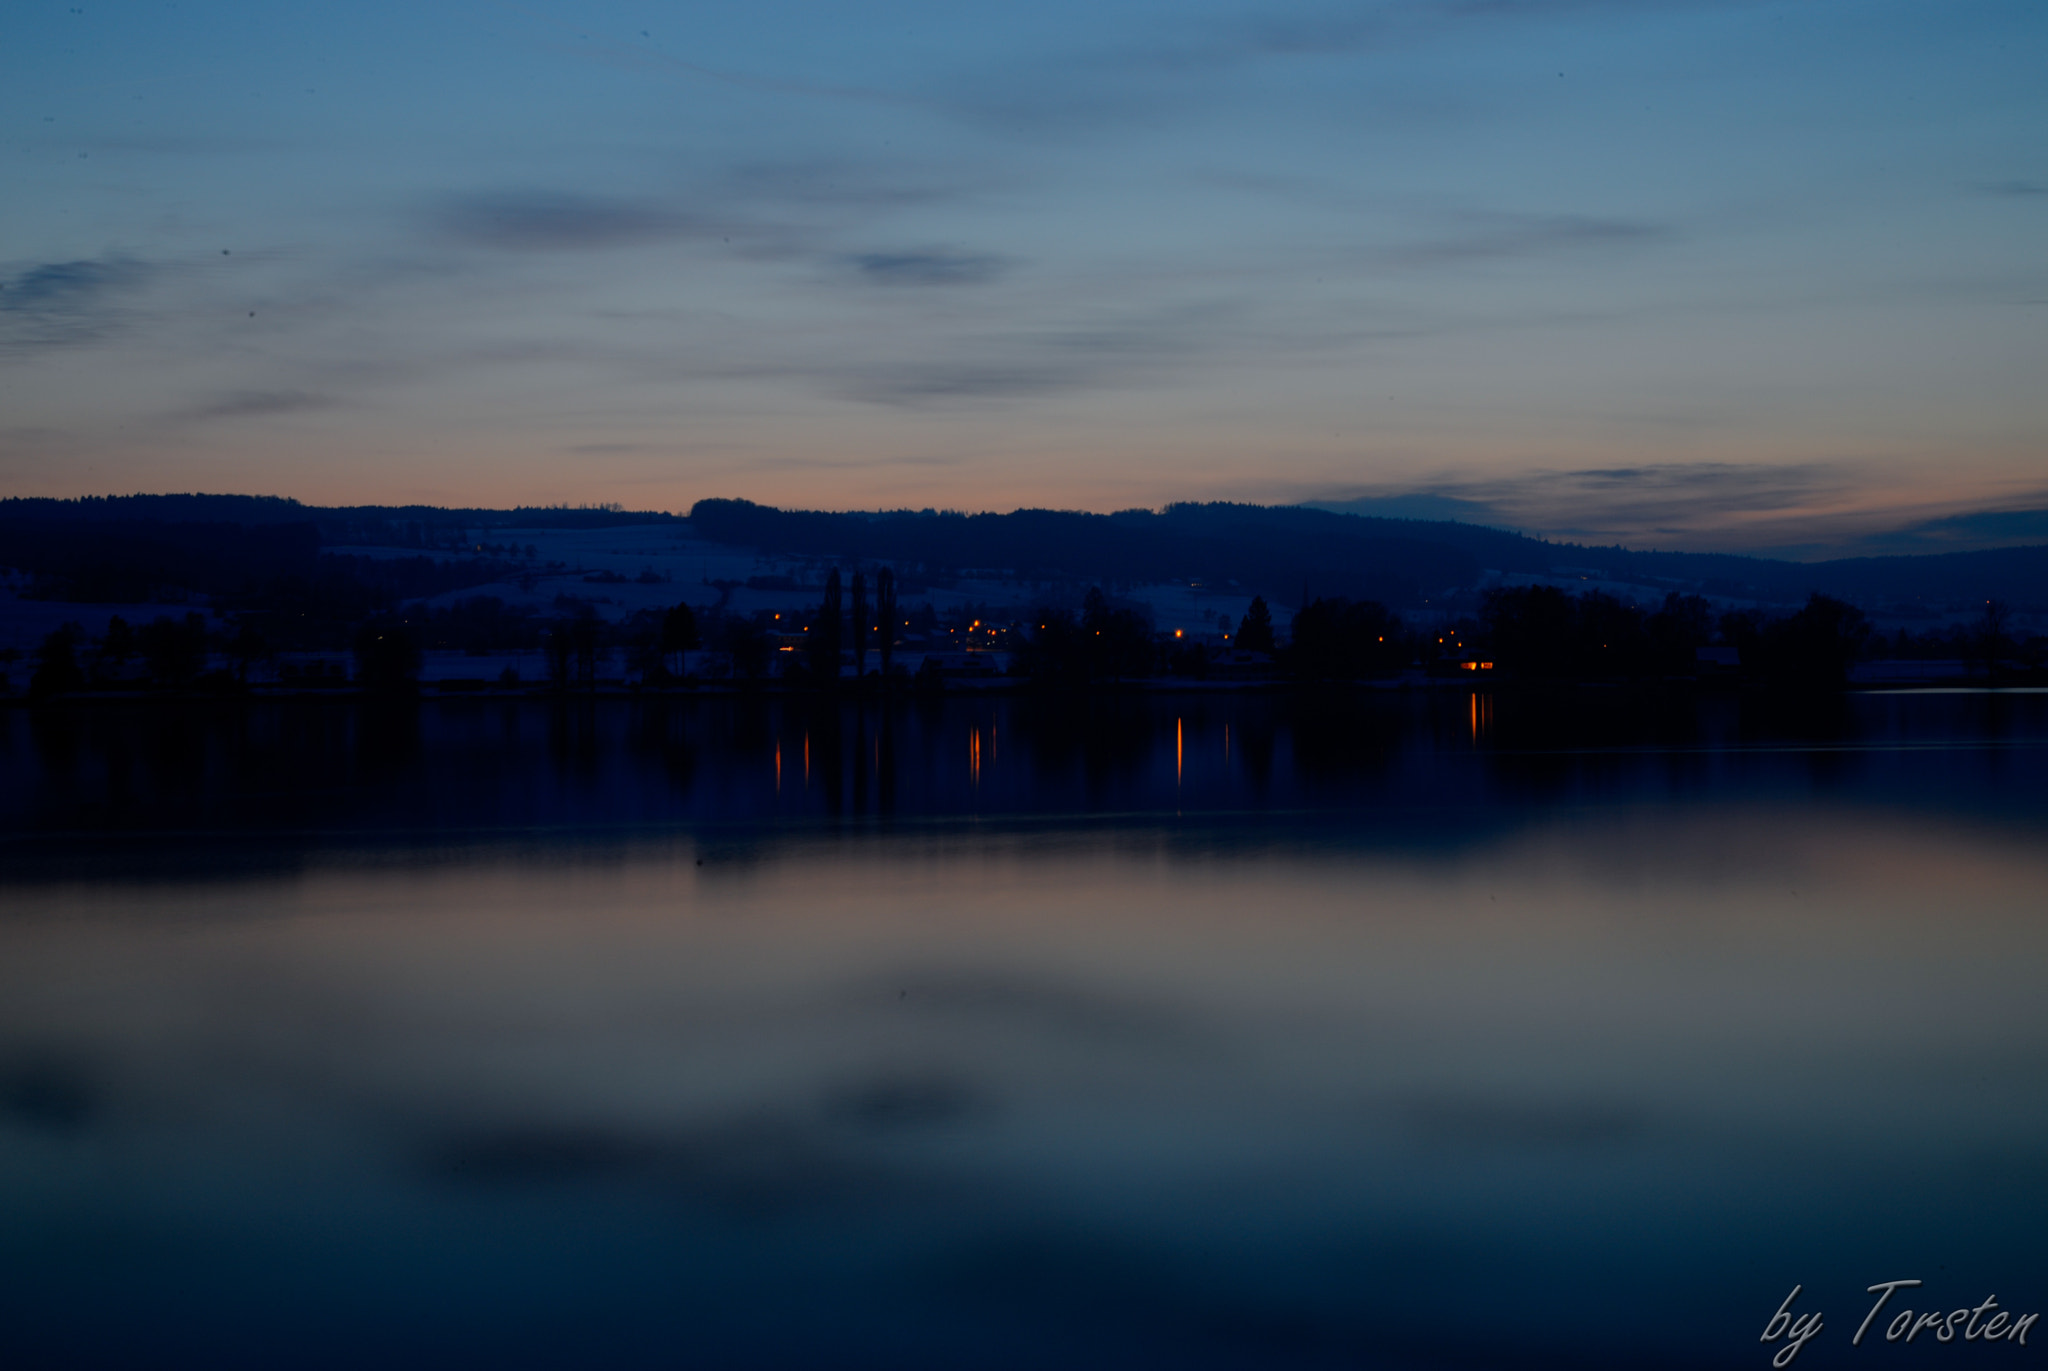 Photograph Winter evening at the lake Constance by Torsten Trunz on 500px